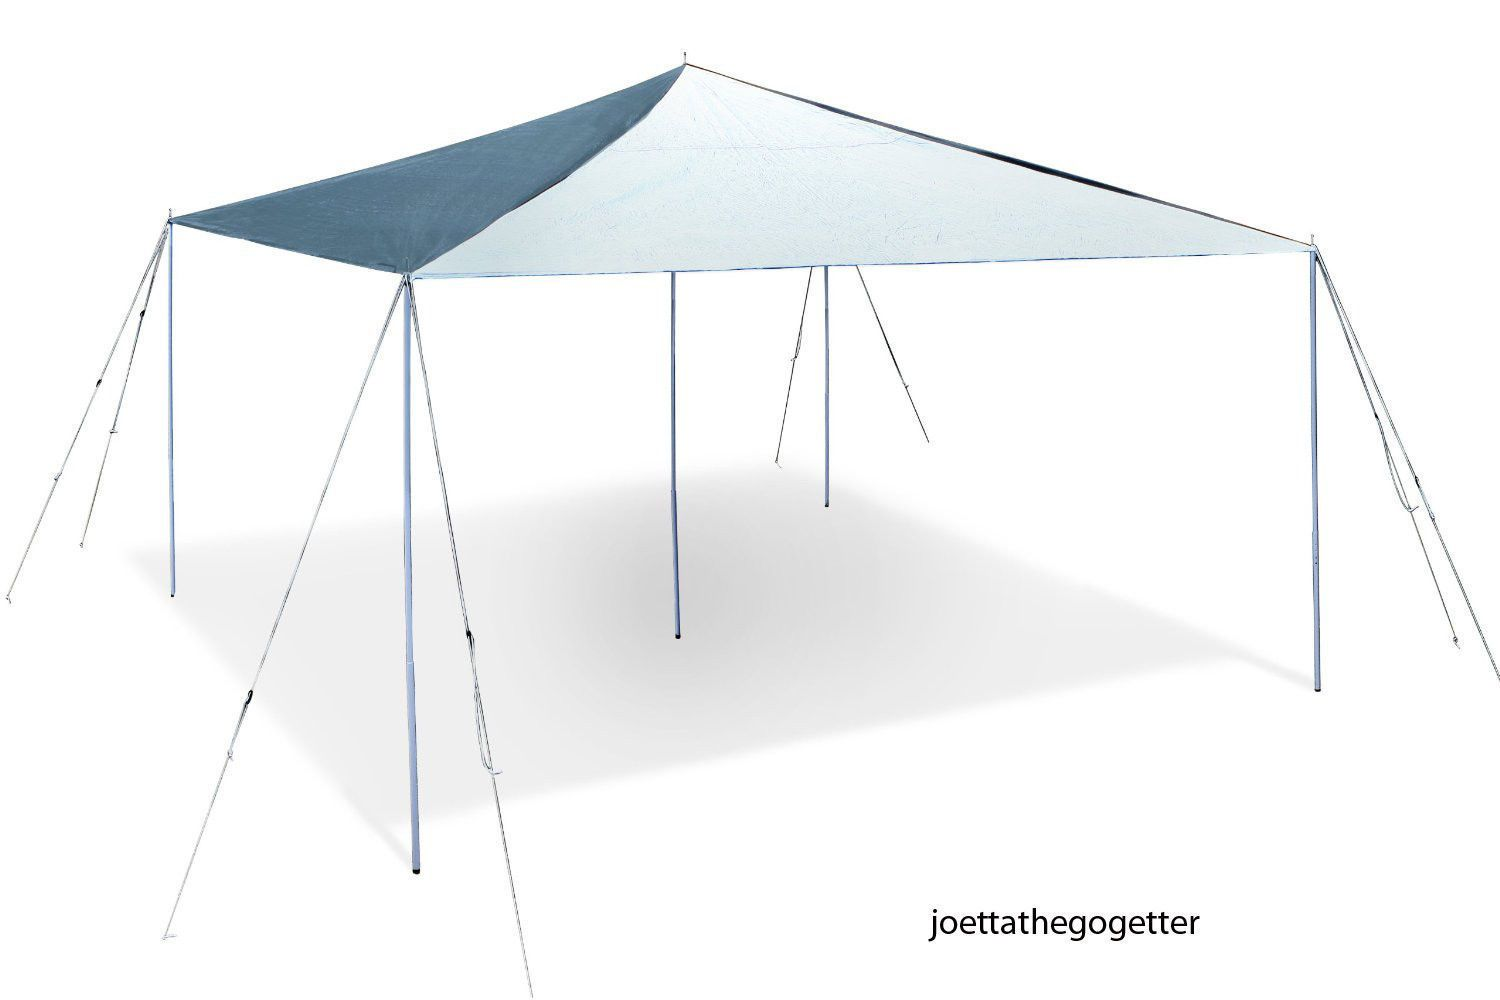 Made Of Heavy Duty Fiber Reinforced Waterproof Polyethylene Corners And Center Are Double Reinforced Rope Reinforc With Images Canopy Steel Canopy Canopy Shelter